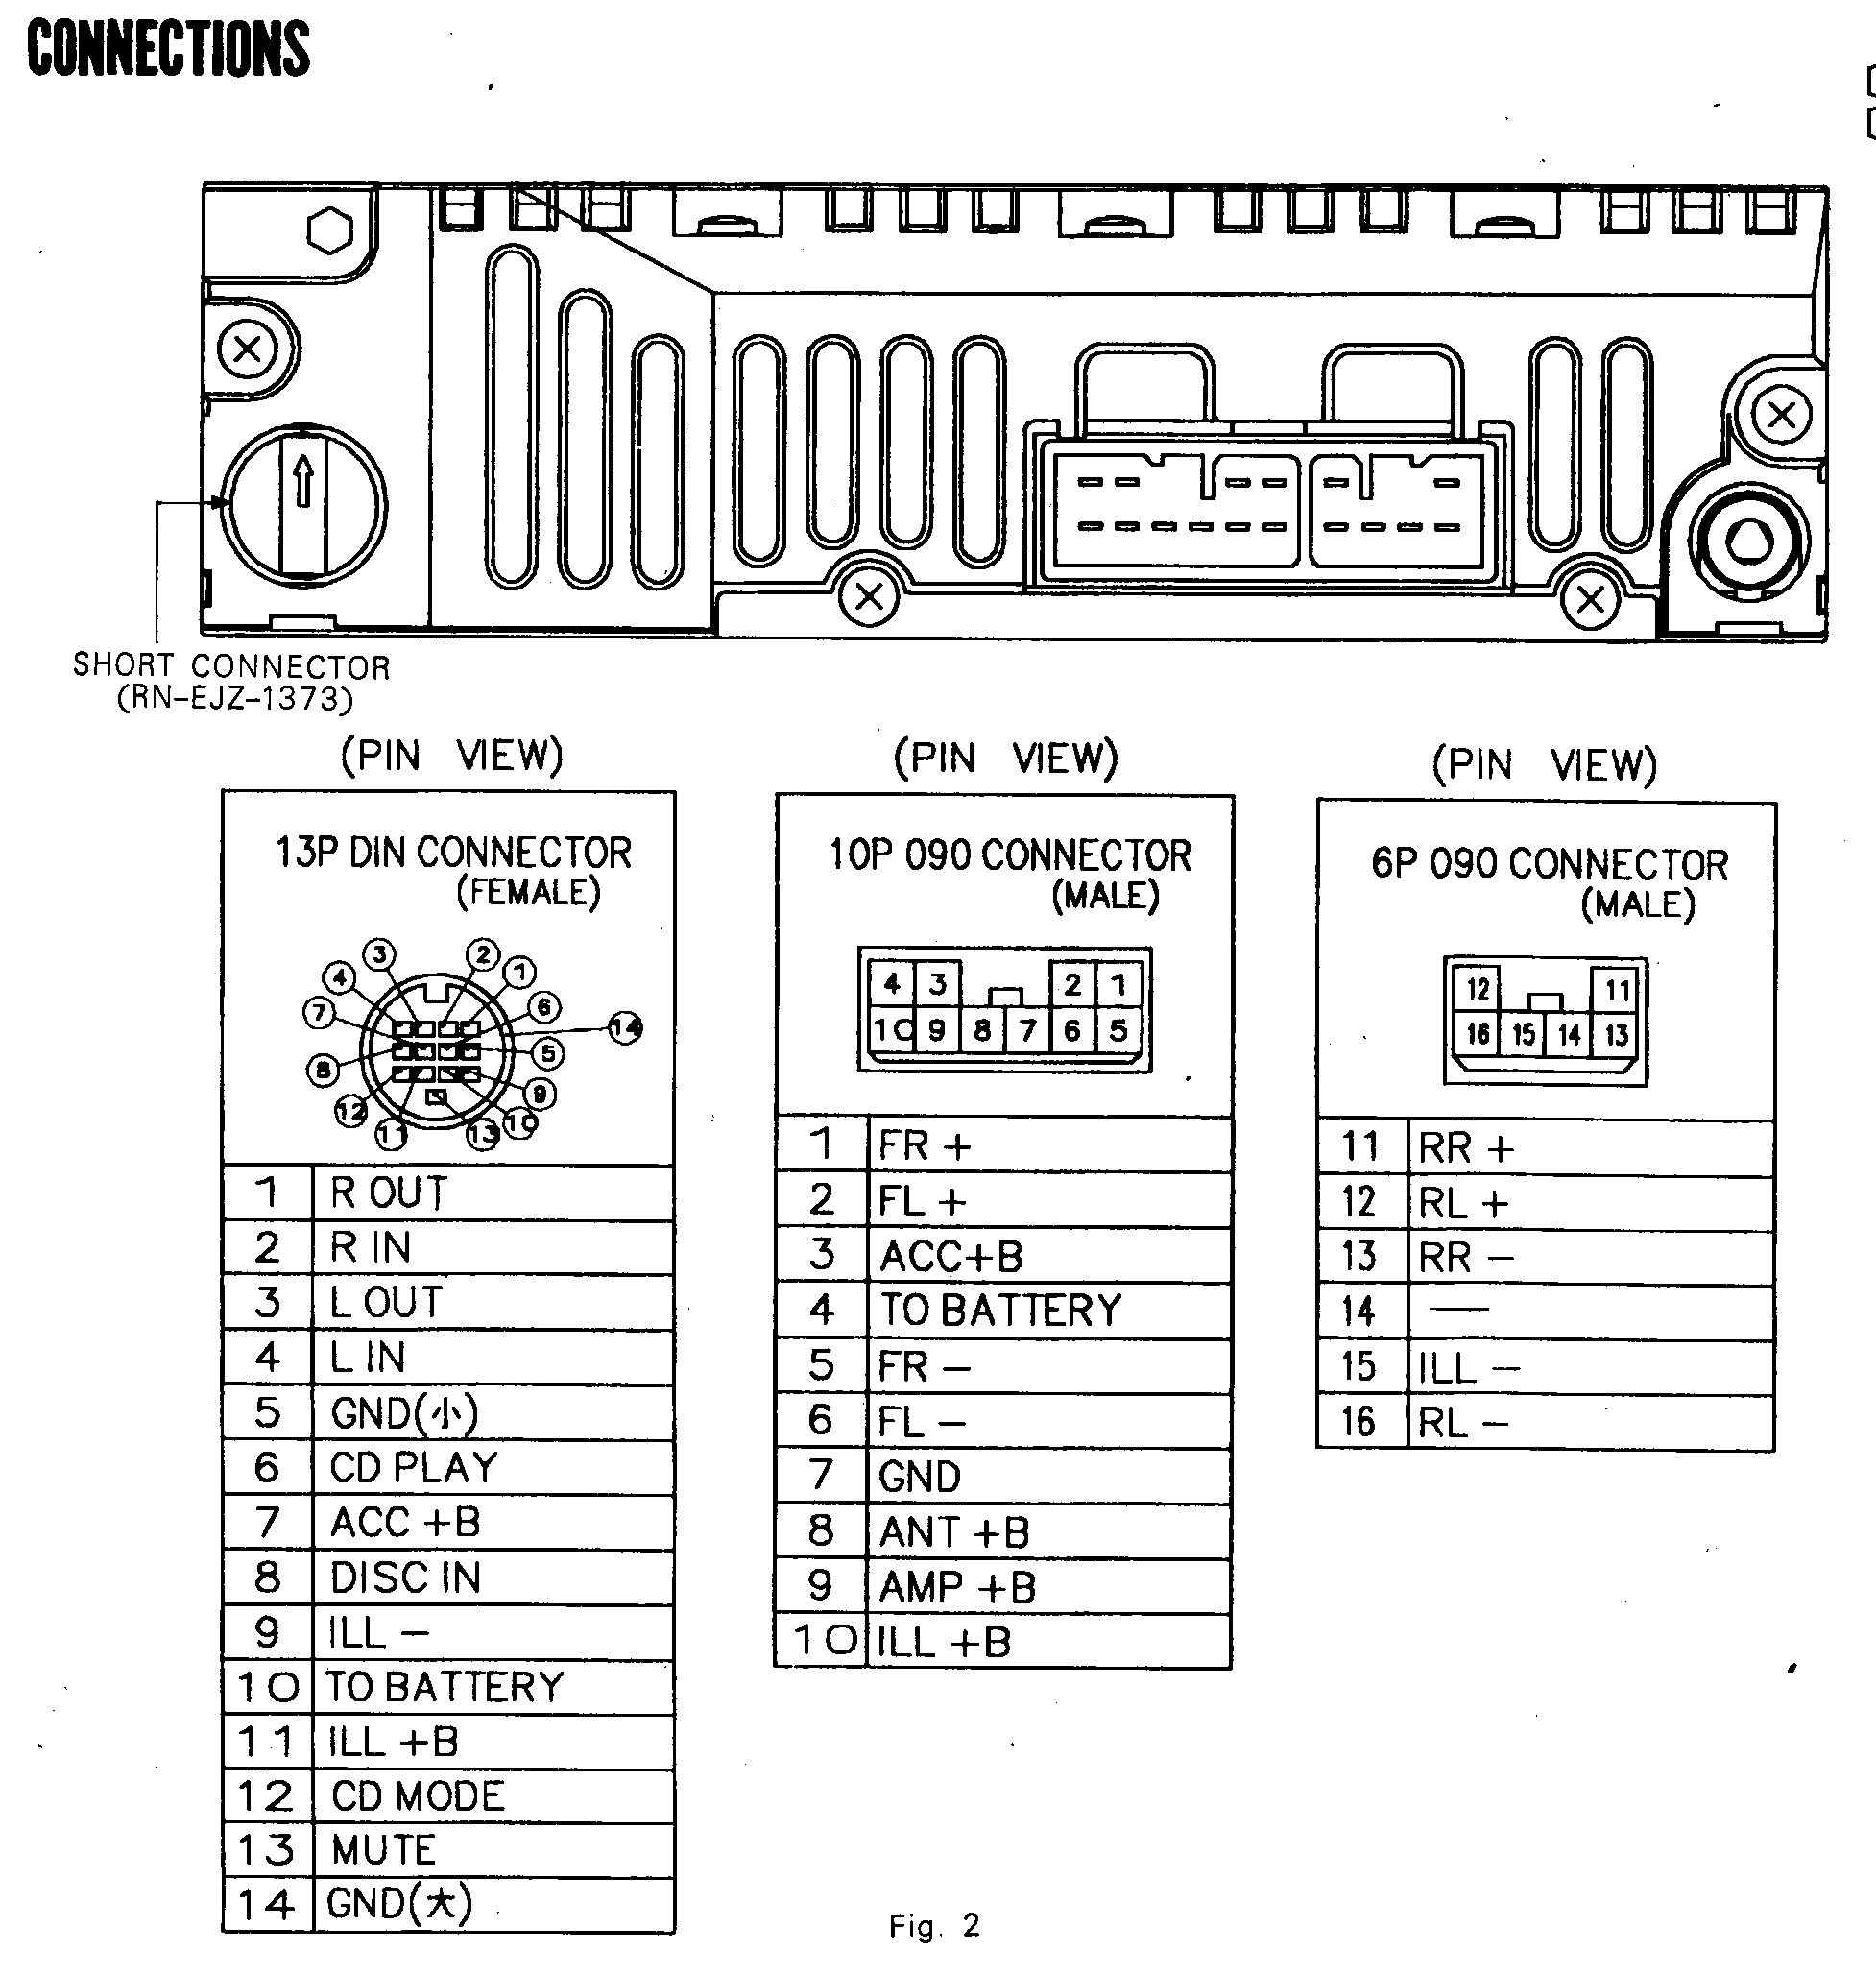 WireHarnessToy121003 car audio wire diagram codes toyota factory car stereo repair  at virtualis.co